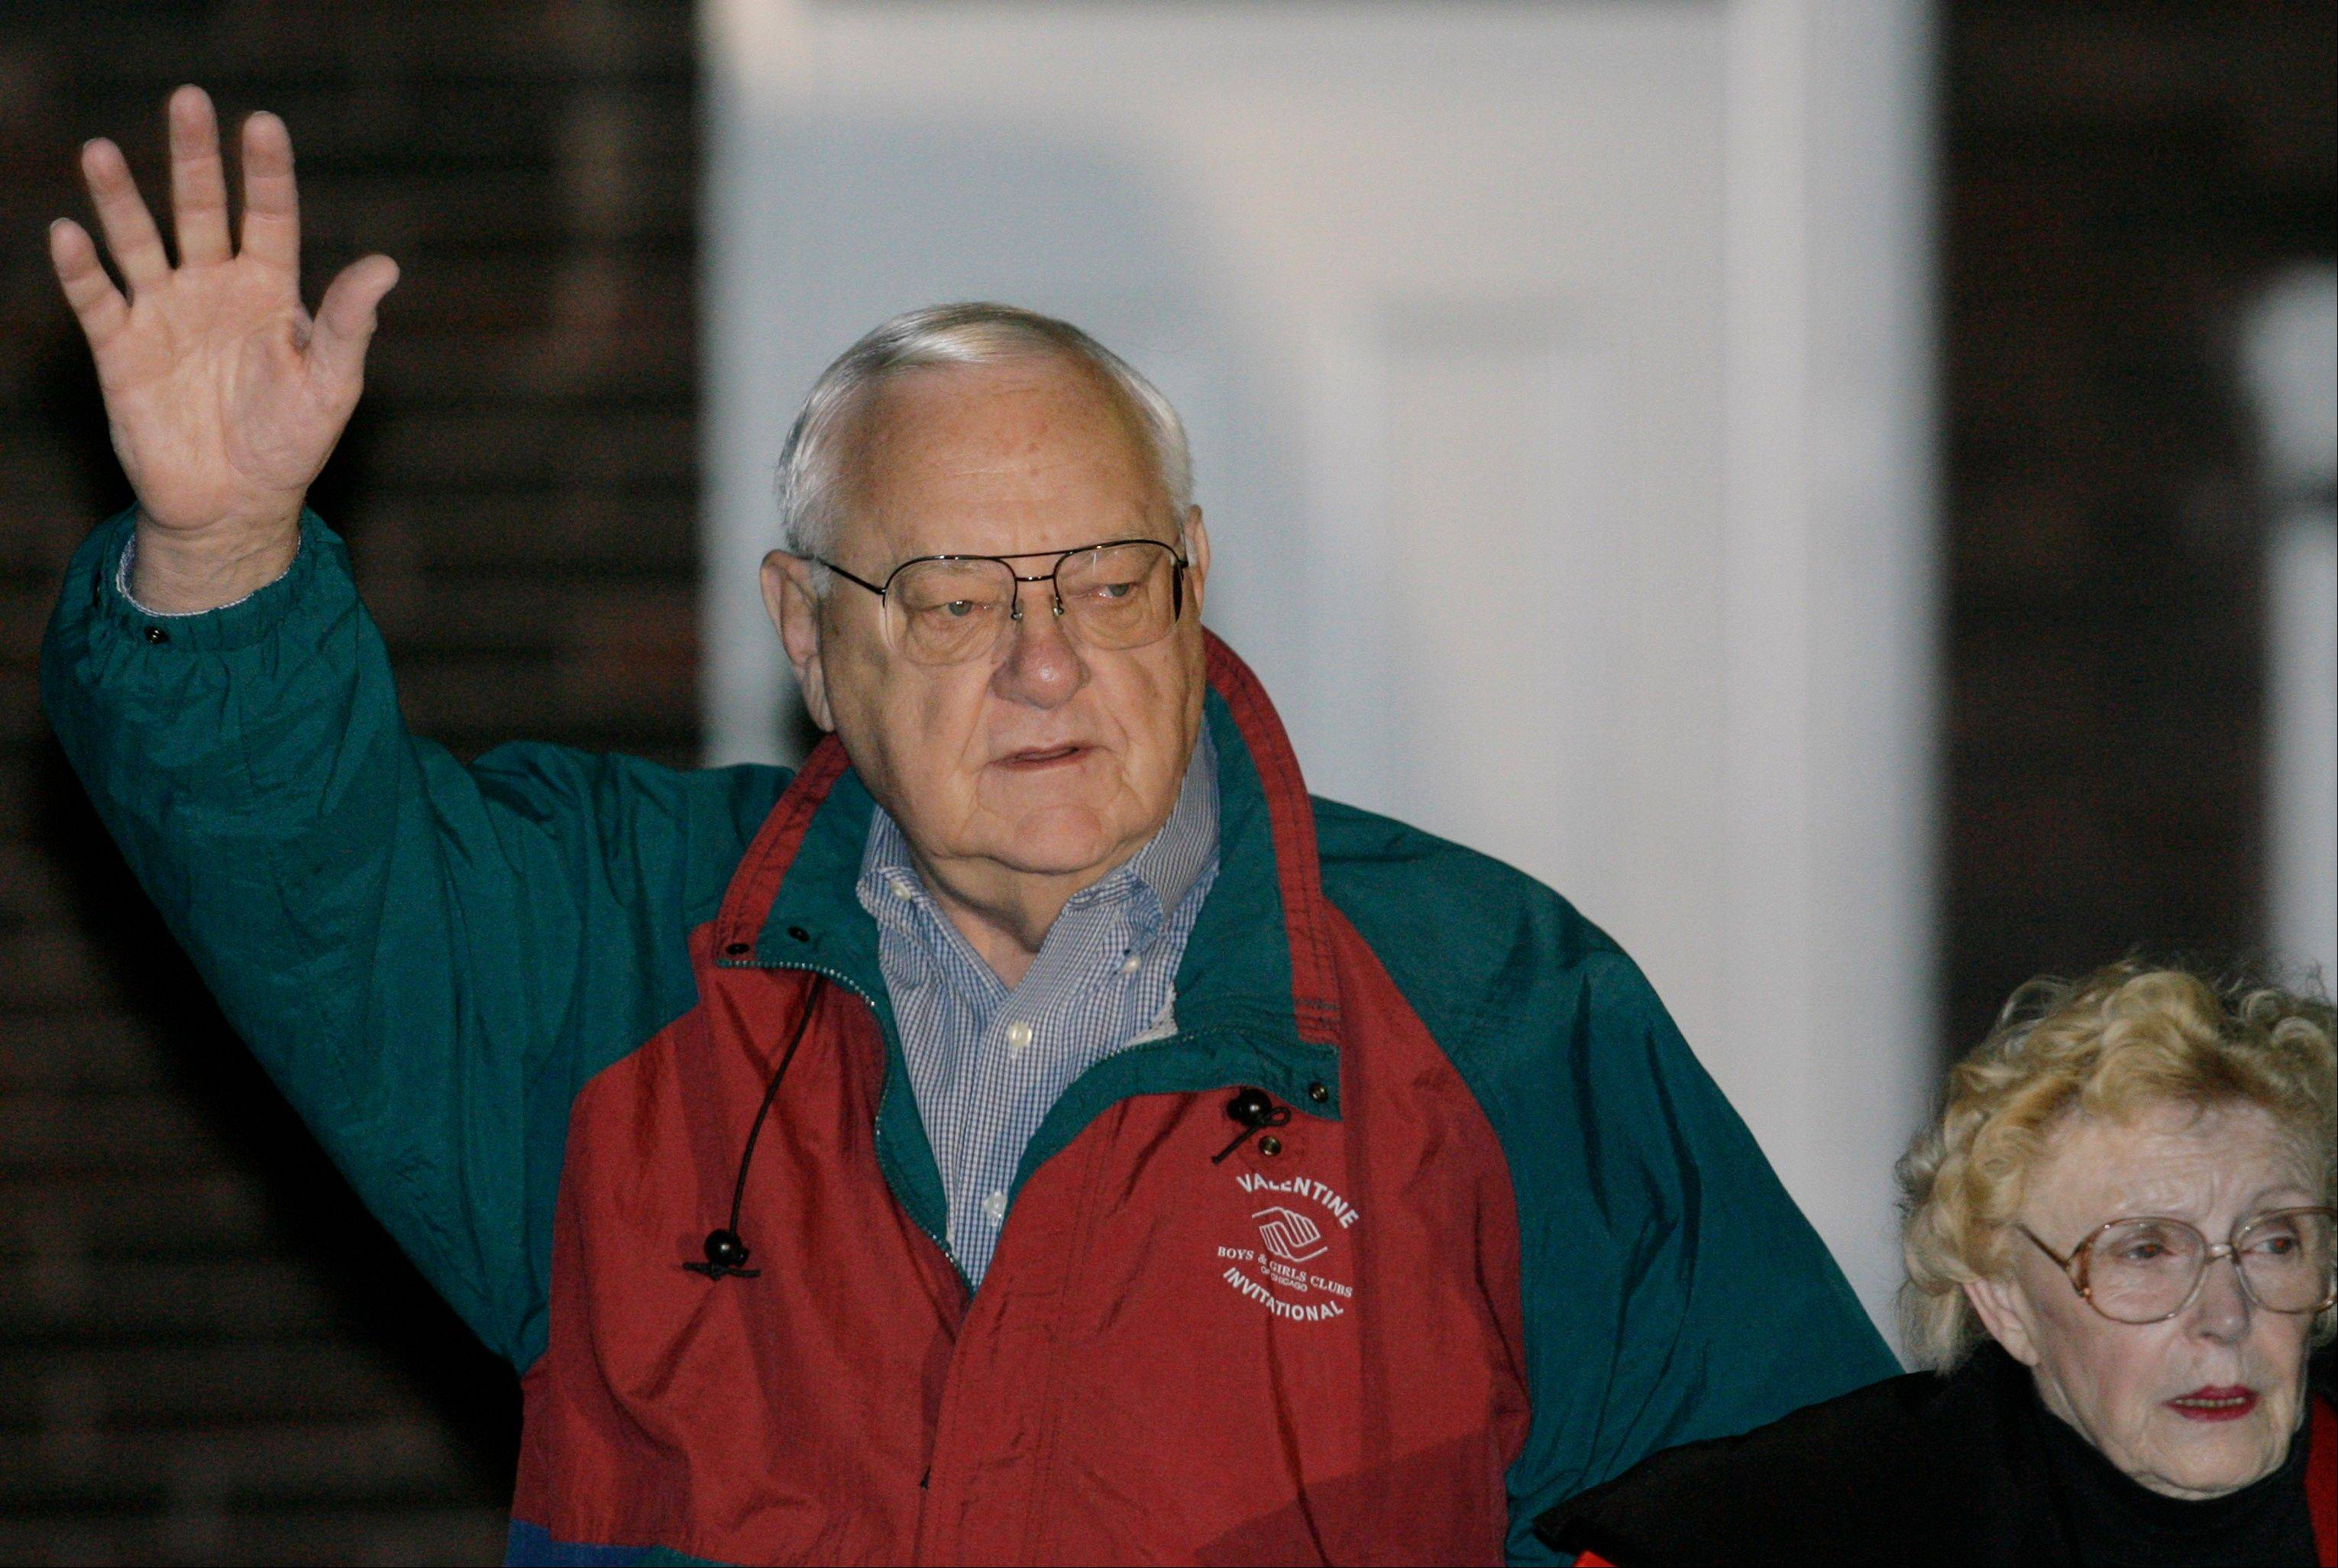 Former Gov. George Ryan leaves his Kankakee home with his wife, Lura Lynn, in 2007 as he prepares to report to prison. Lura Lynn Ryan died in 2011.